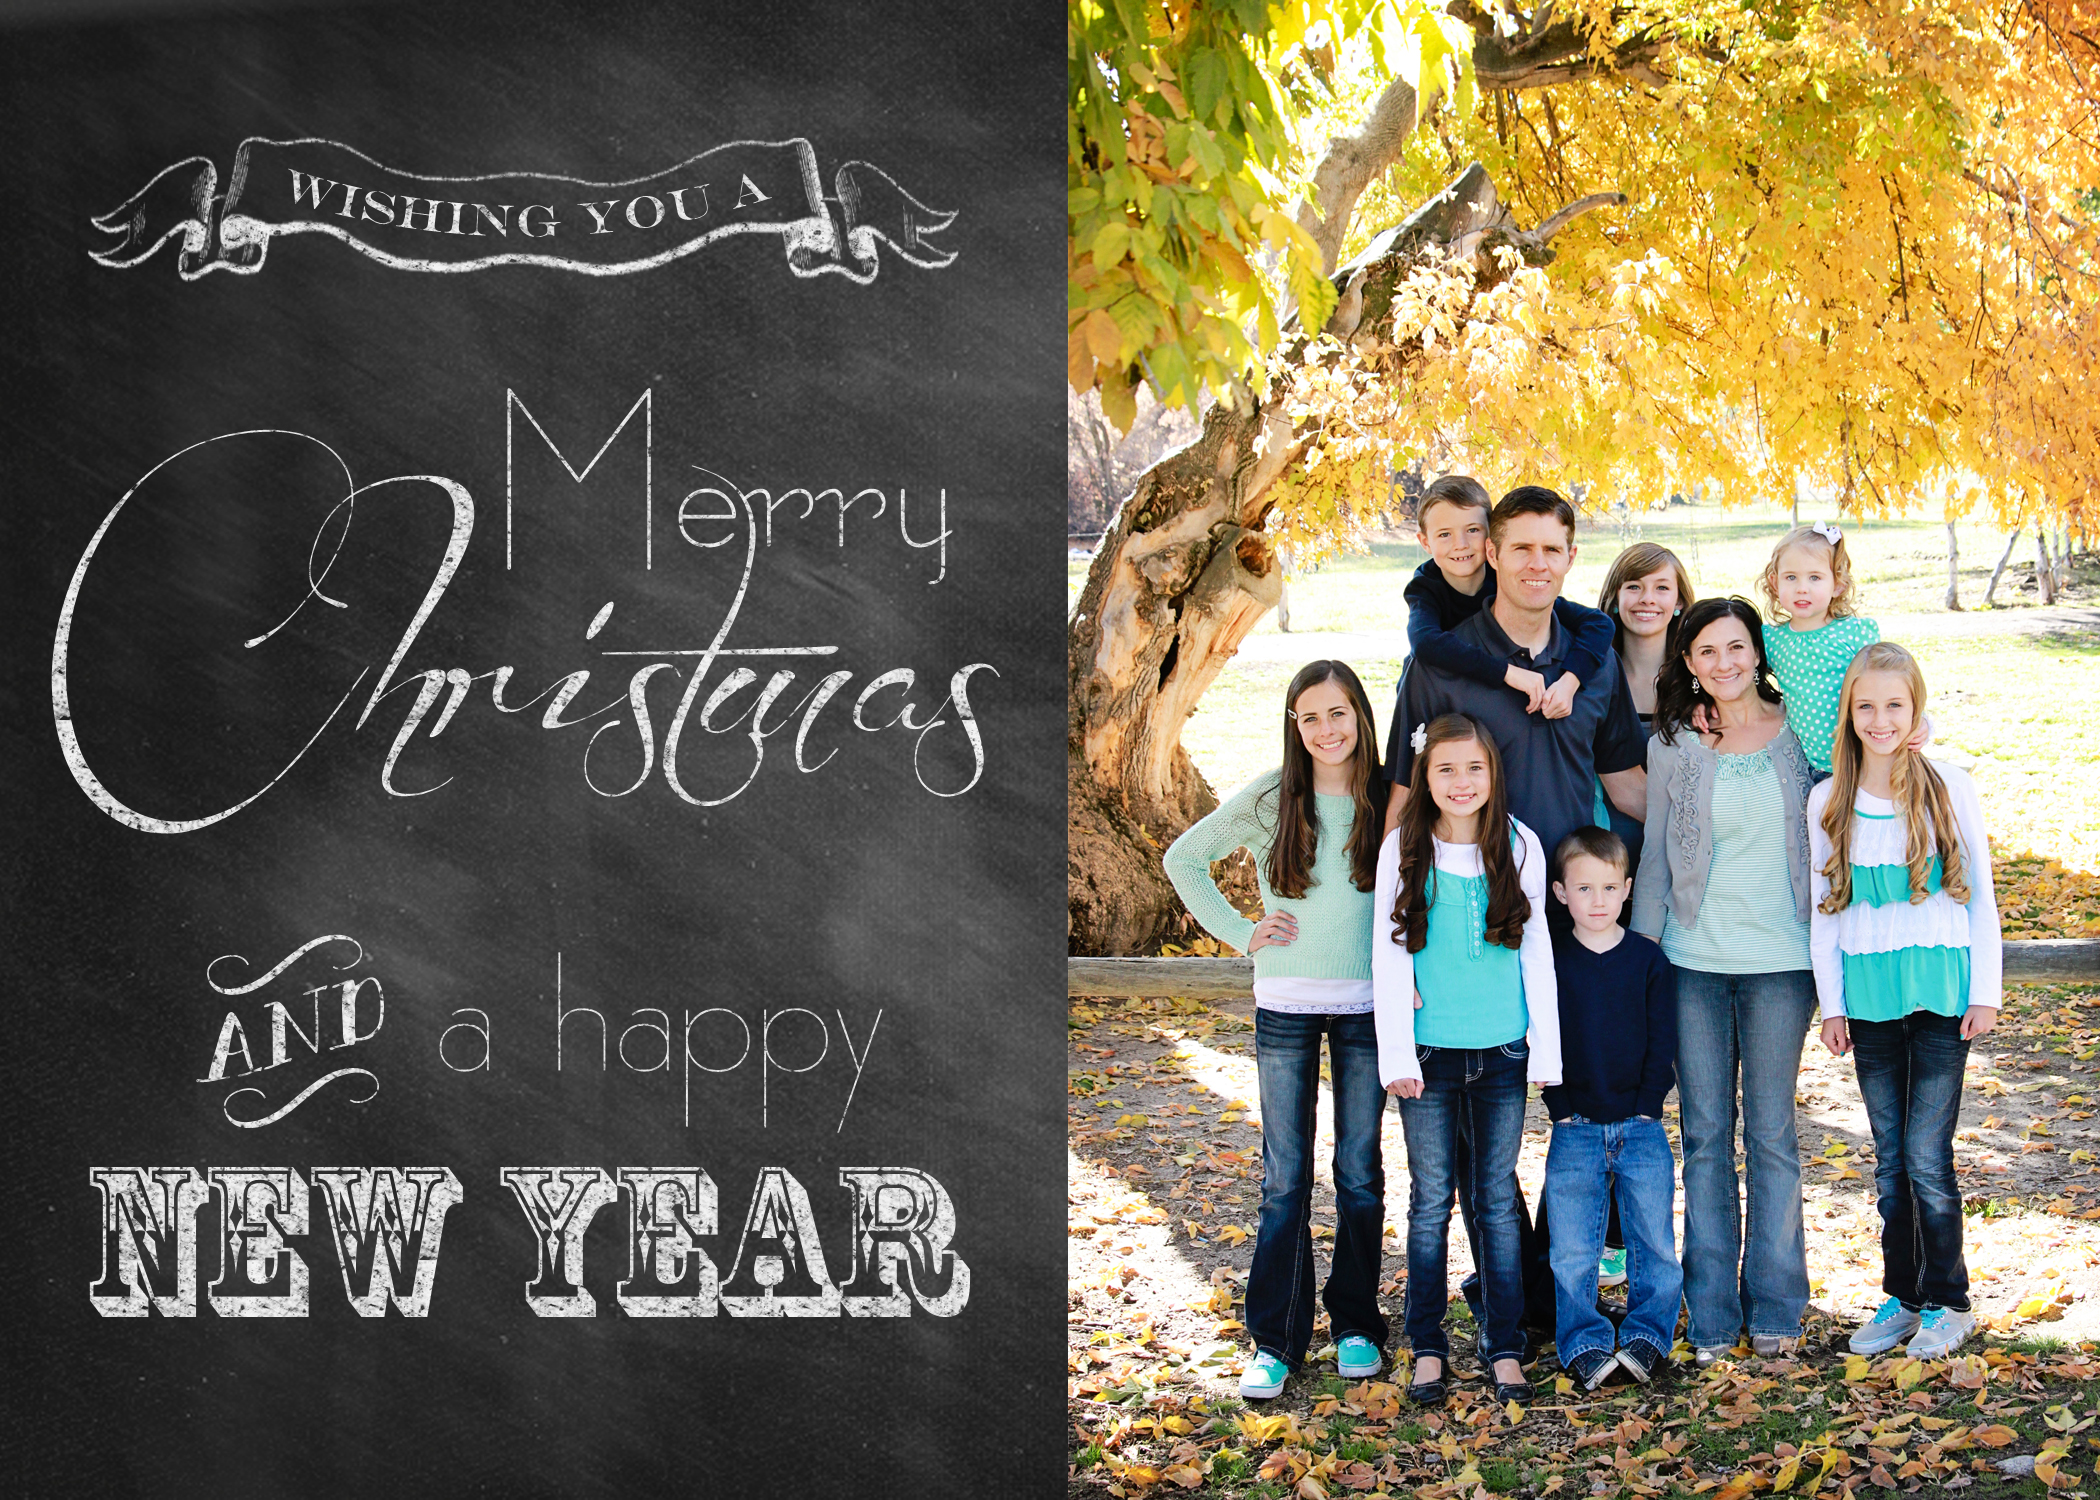 Christmas Photo Card Templates Merry Christmas And Happy New Year - Free christmas card templates for photographers